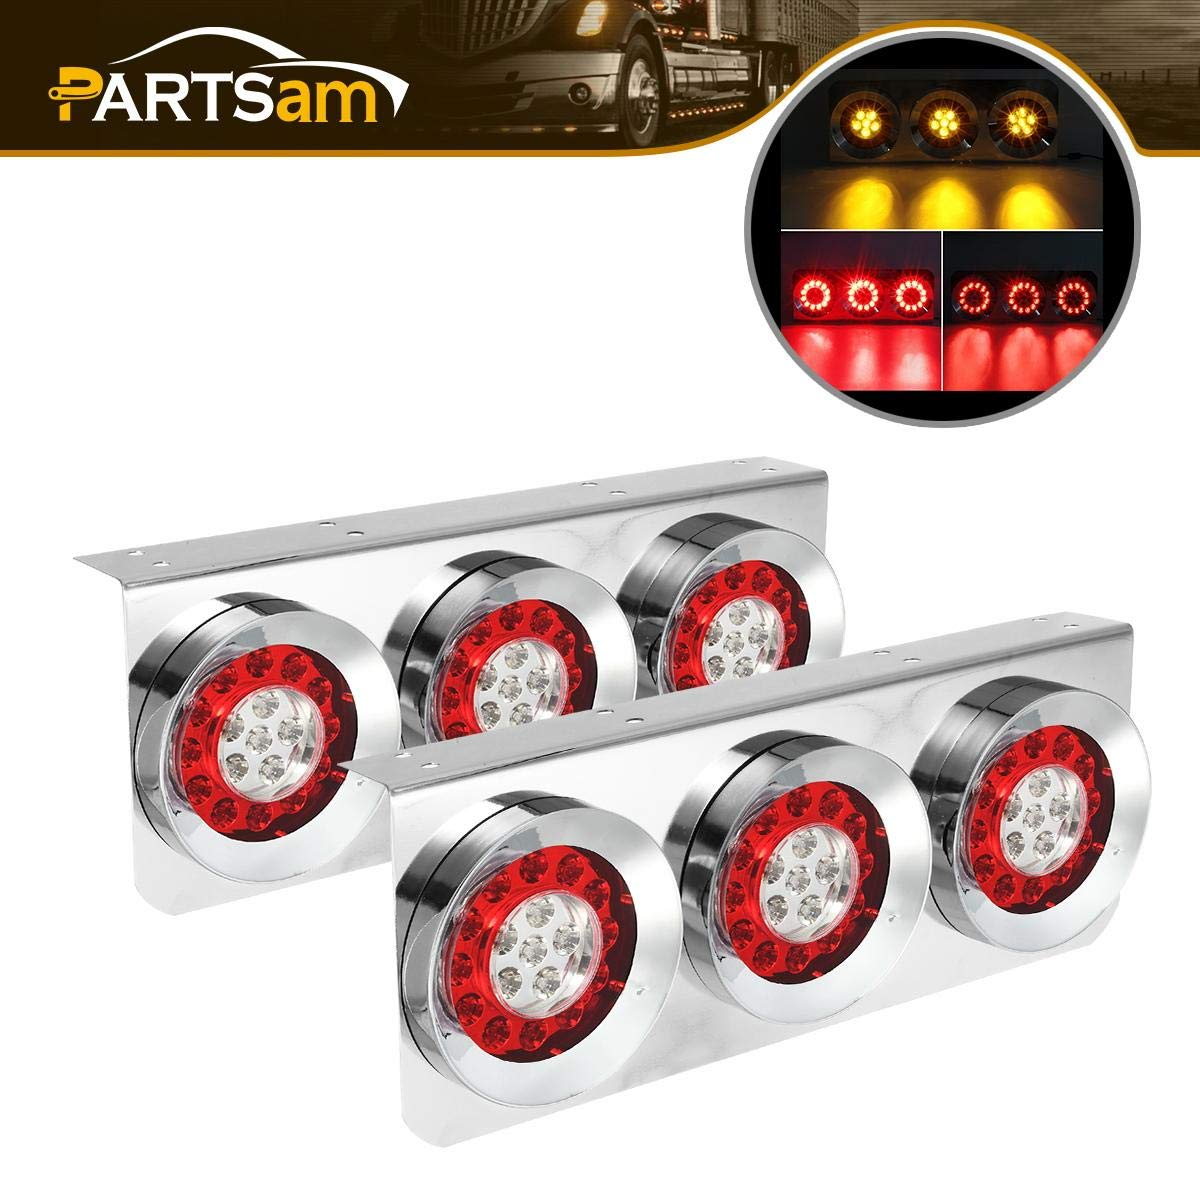 Partsam 2Pcs 54 LED Truck Trailer Tail Lights Bar with Chrome Iron Bracket Base Waterproof 24V 4 Inch Round Led Trailer Tail Lights Bar Stop Turn Signal Running Parking Lights Lamps RV Camper by Partsam